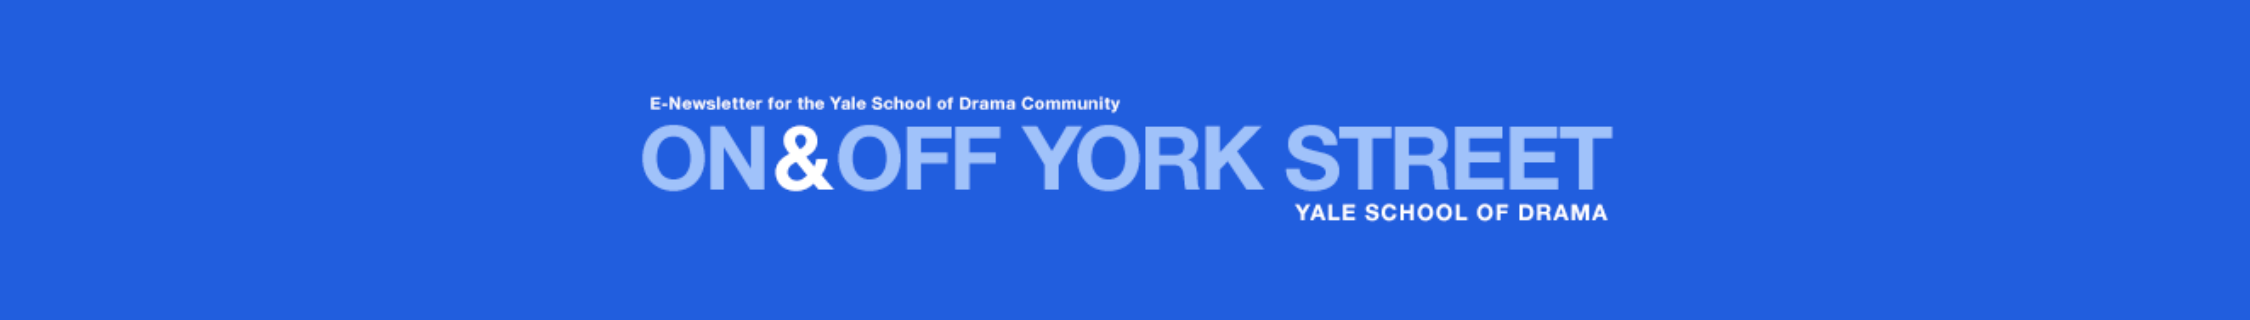 On & Off York Street banner